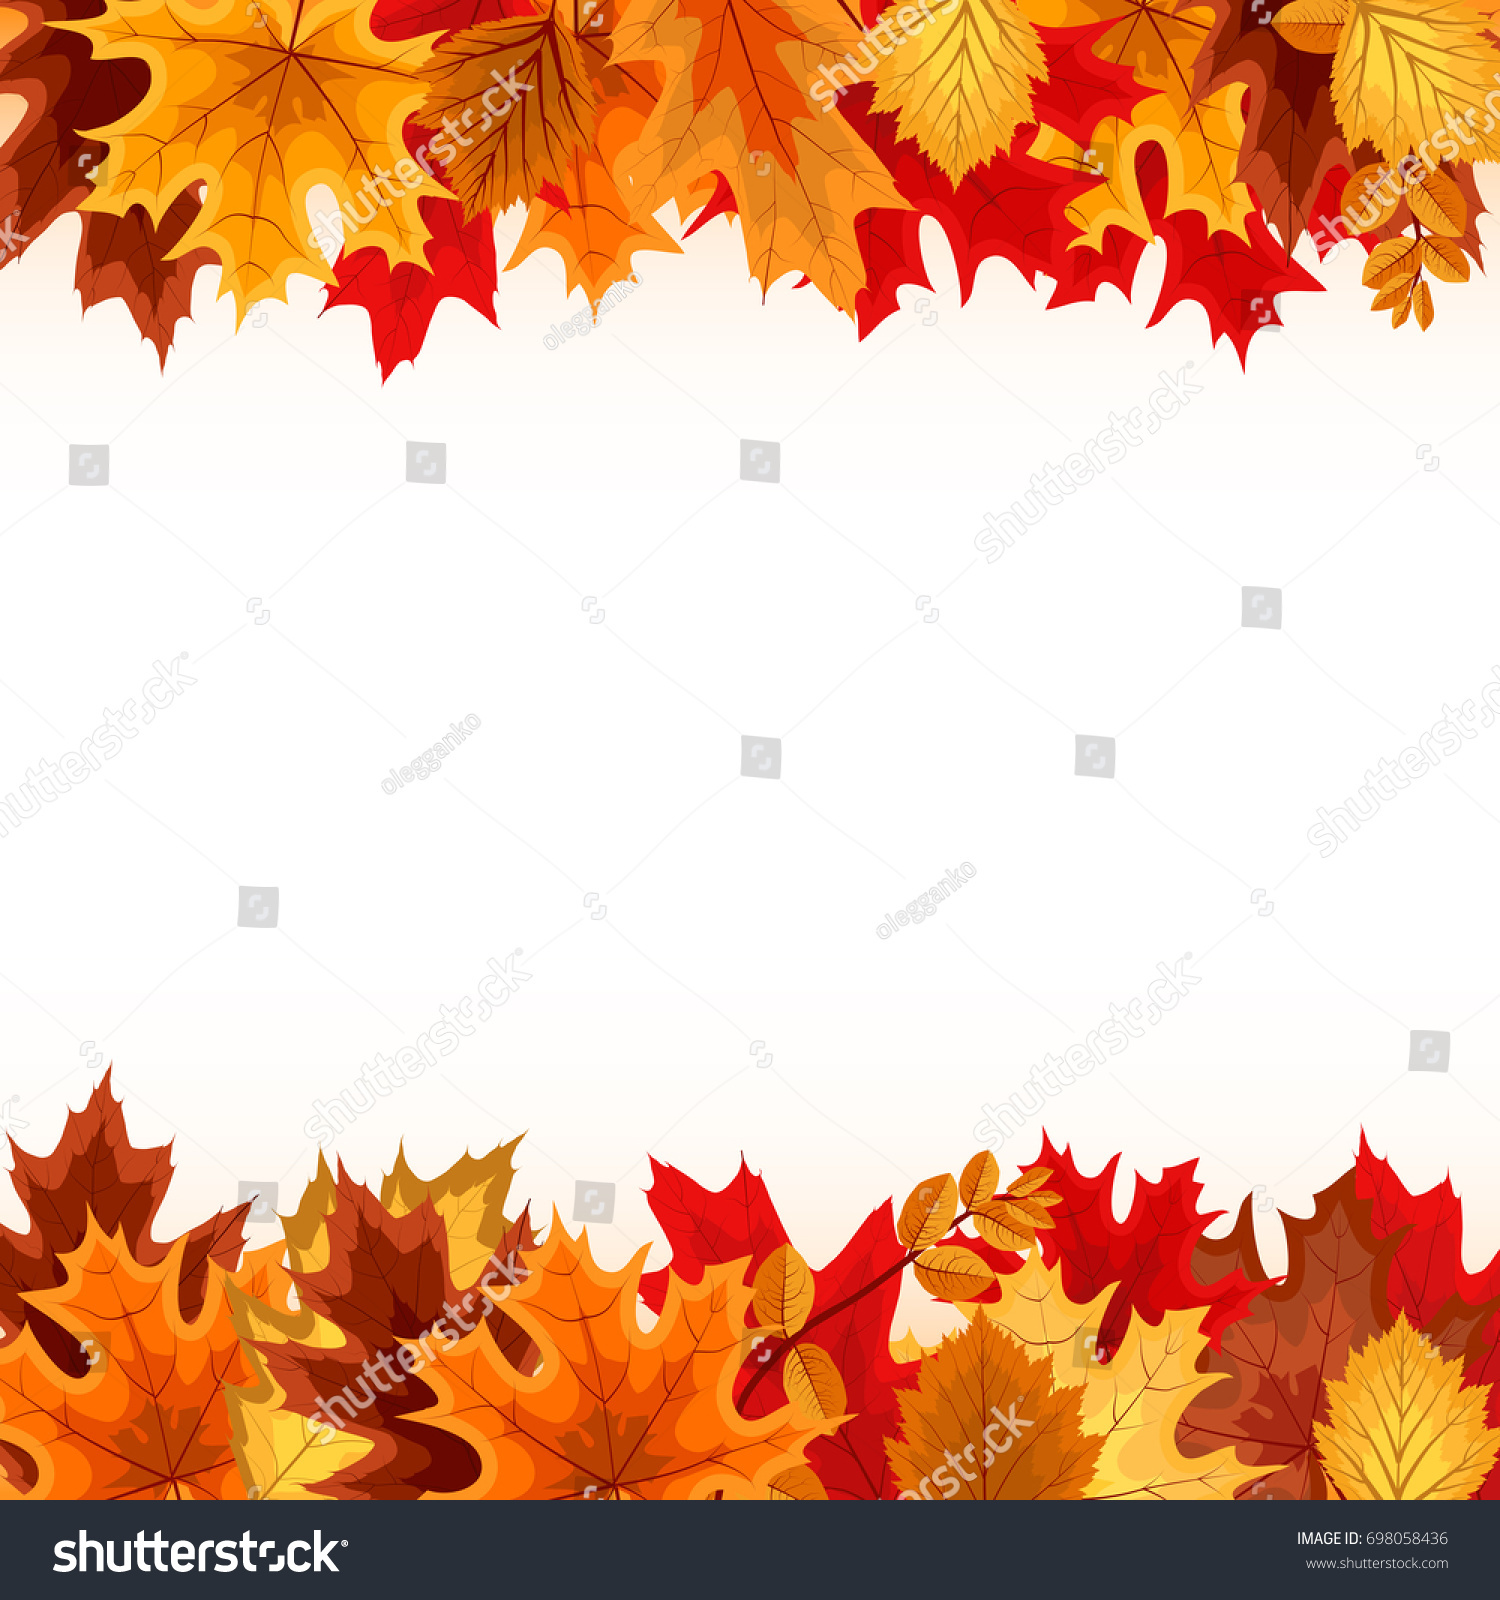 Abstract Vector Illustration Background Falling Autumn